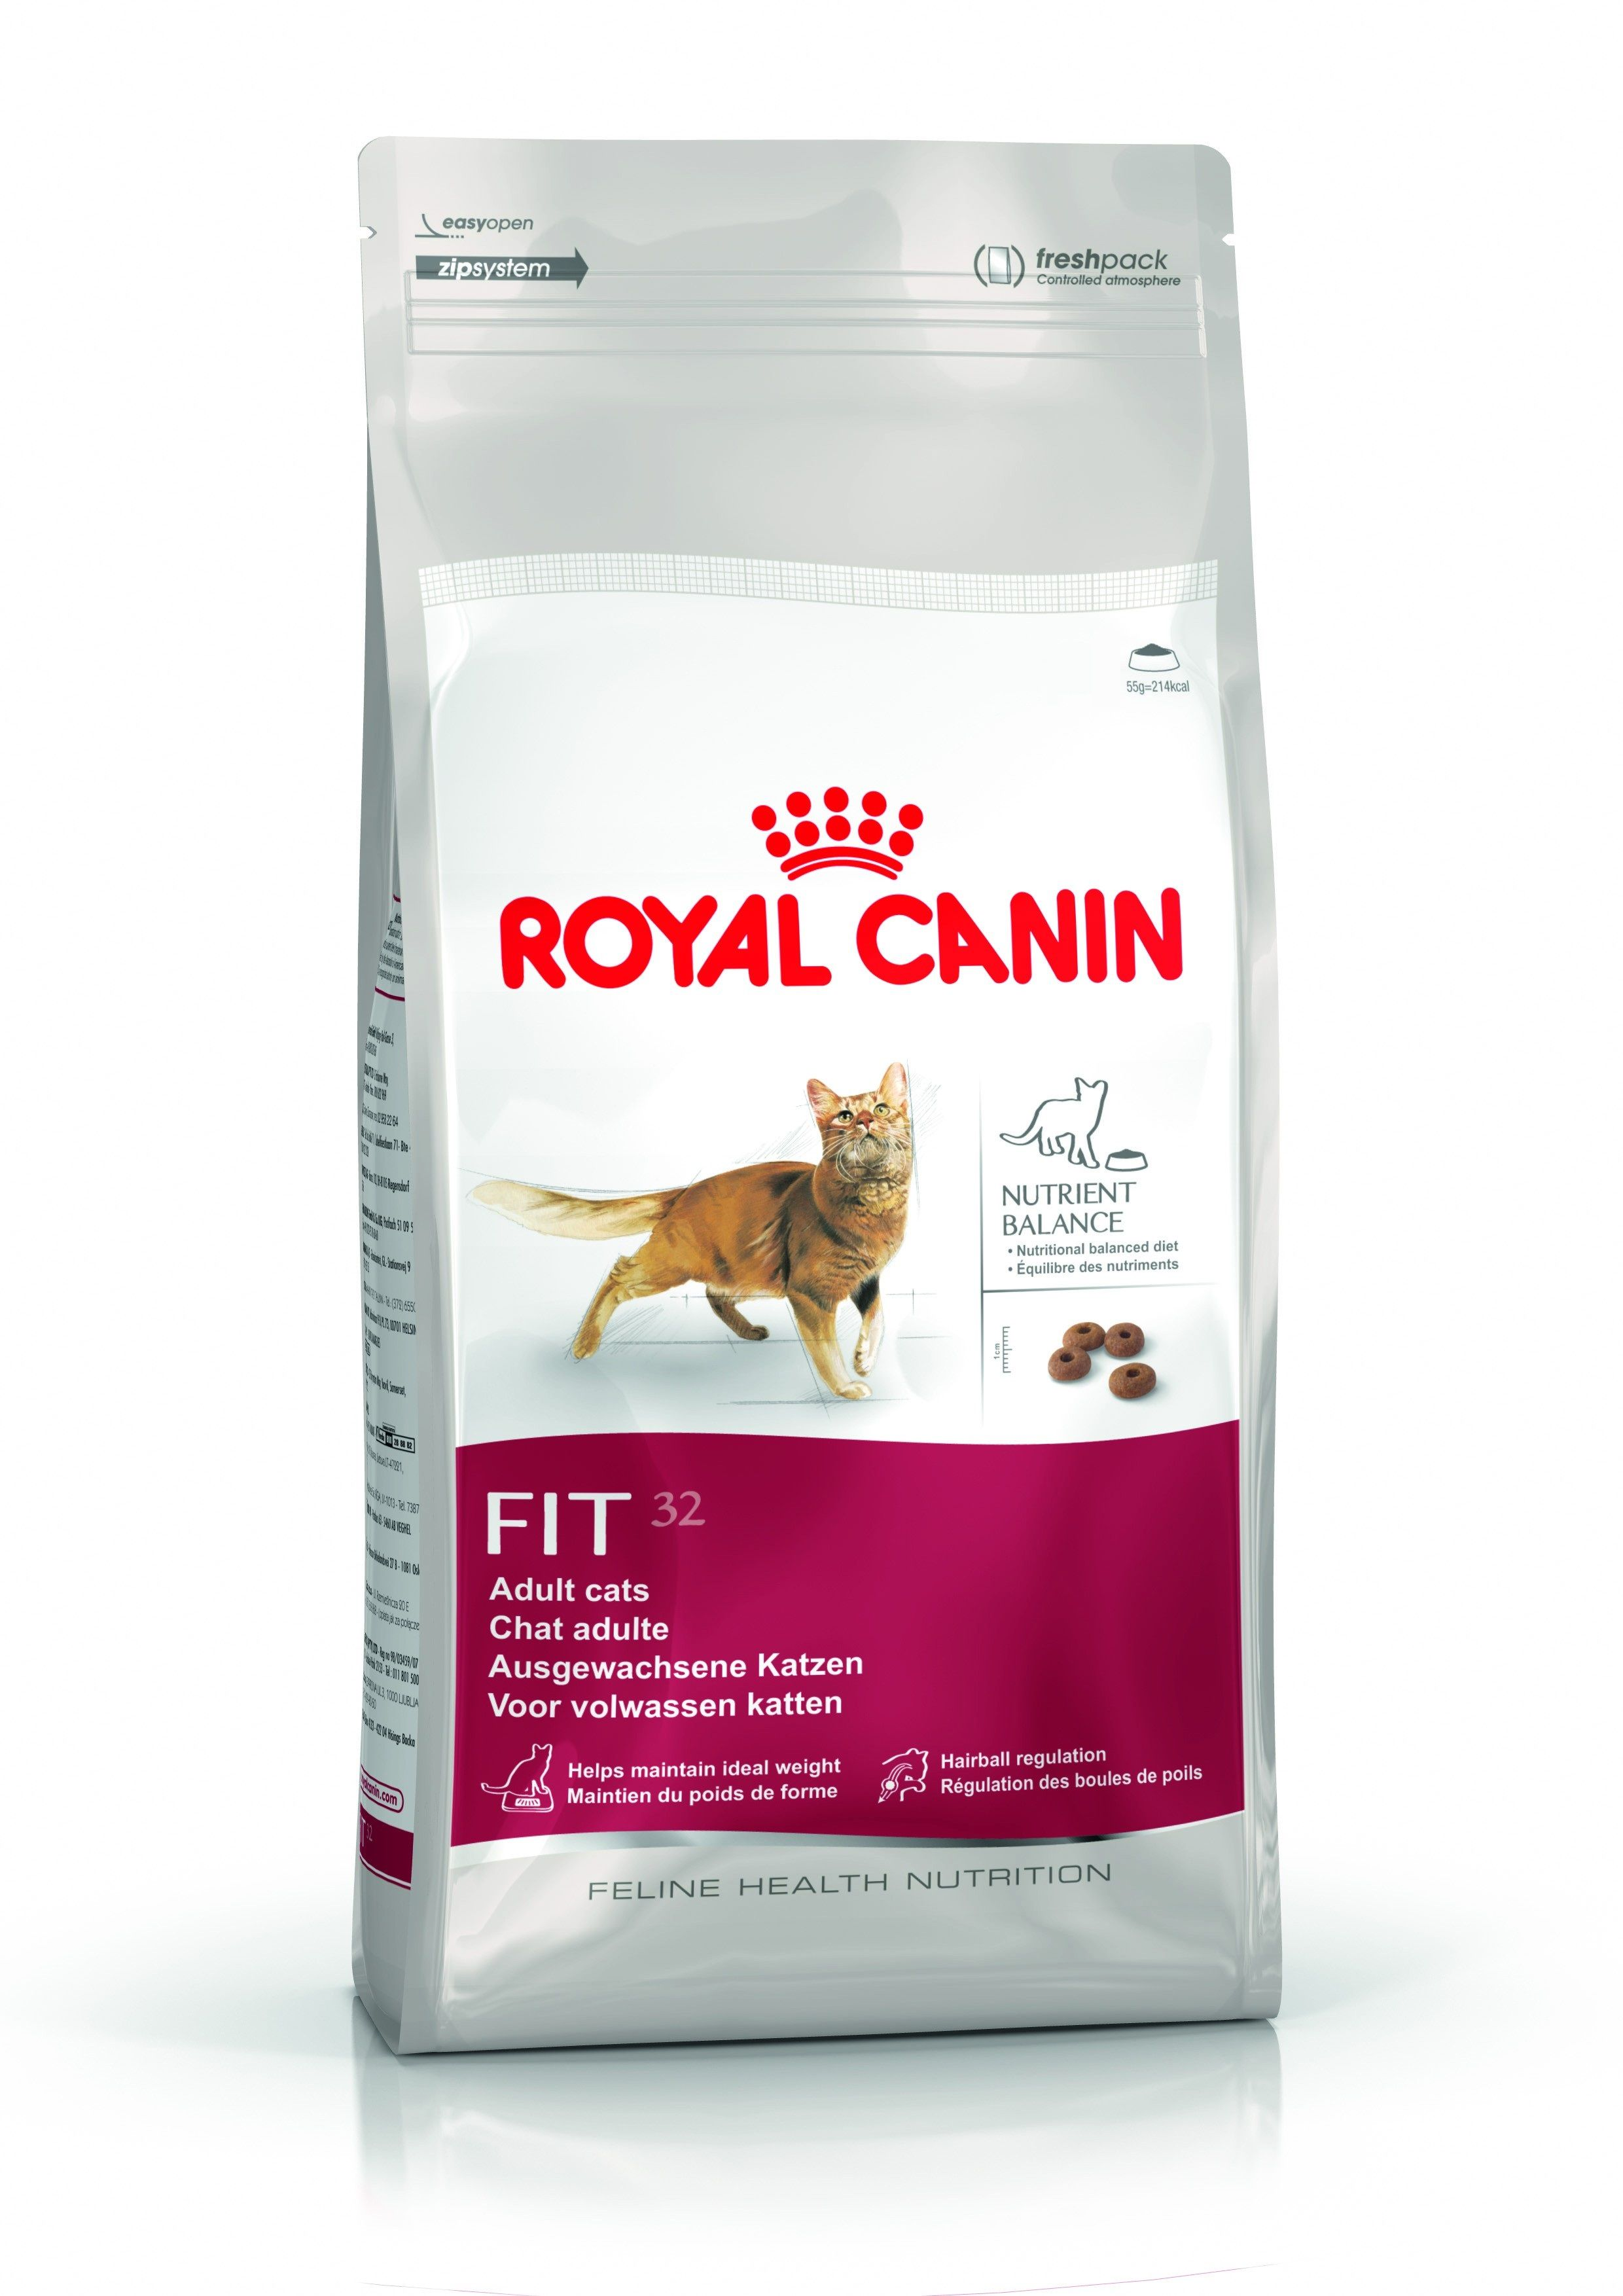 Pin On Royal Canin For Your Dog